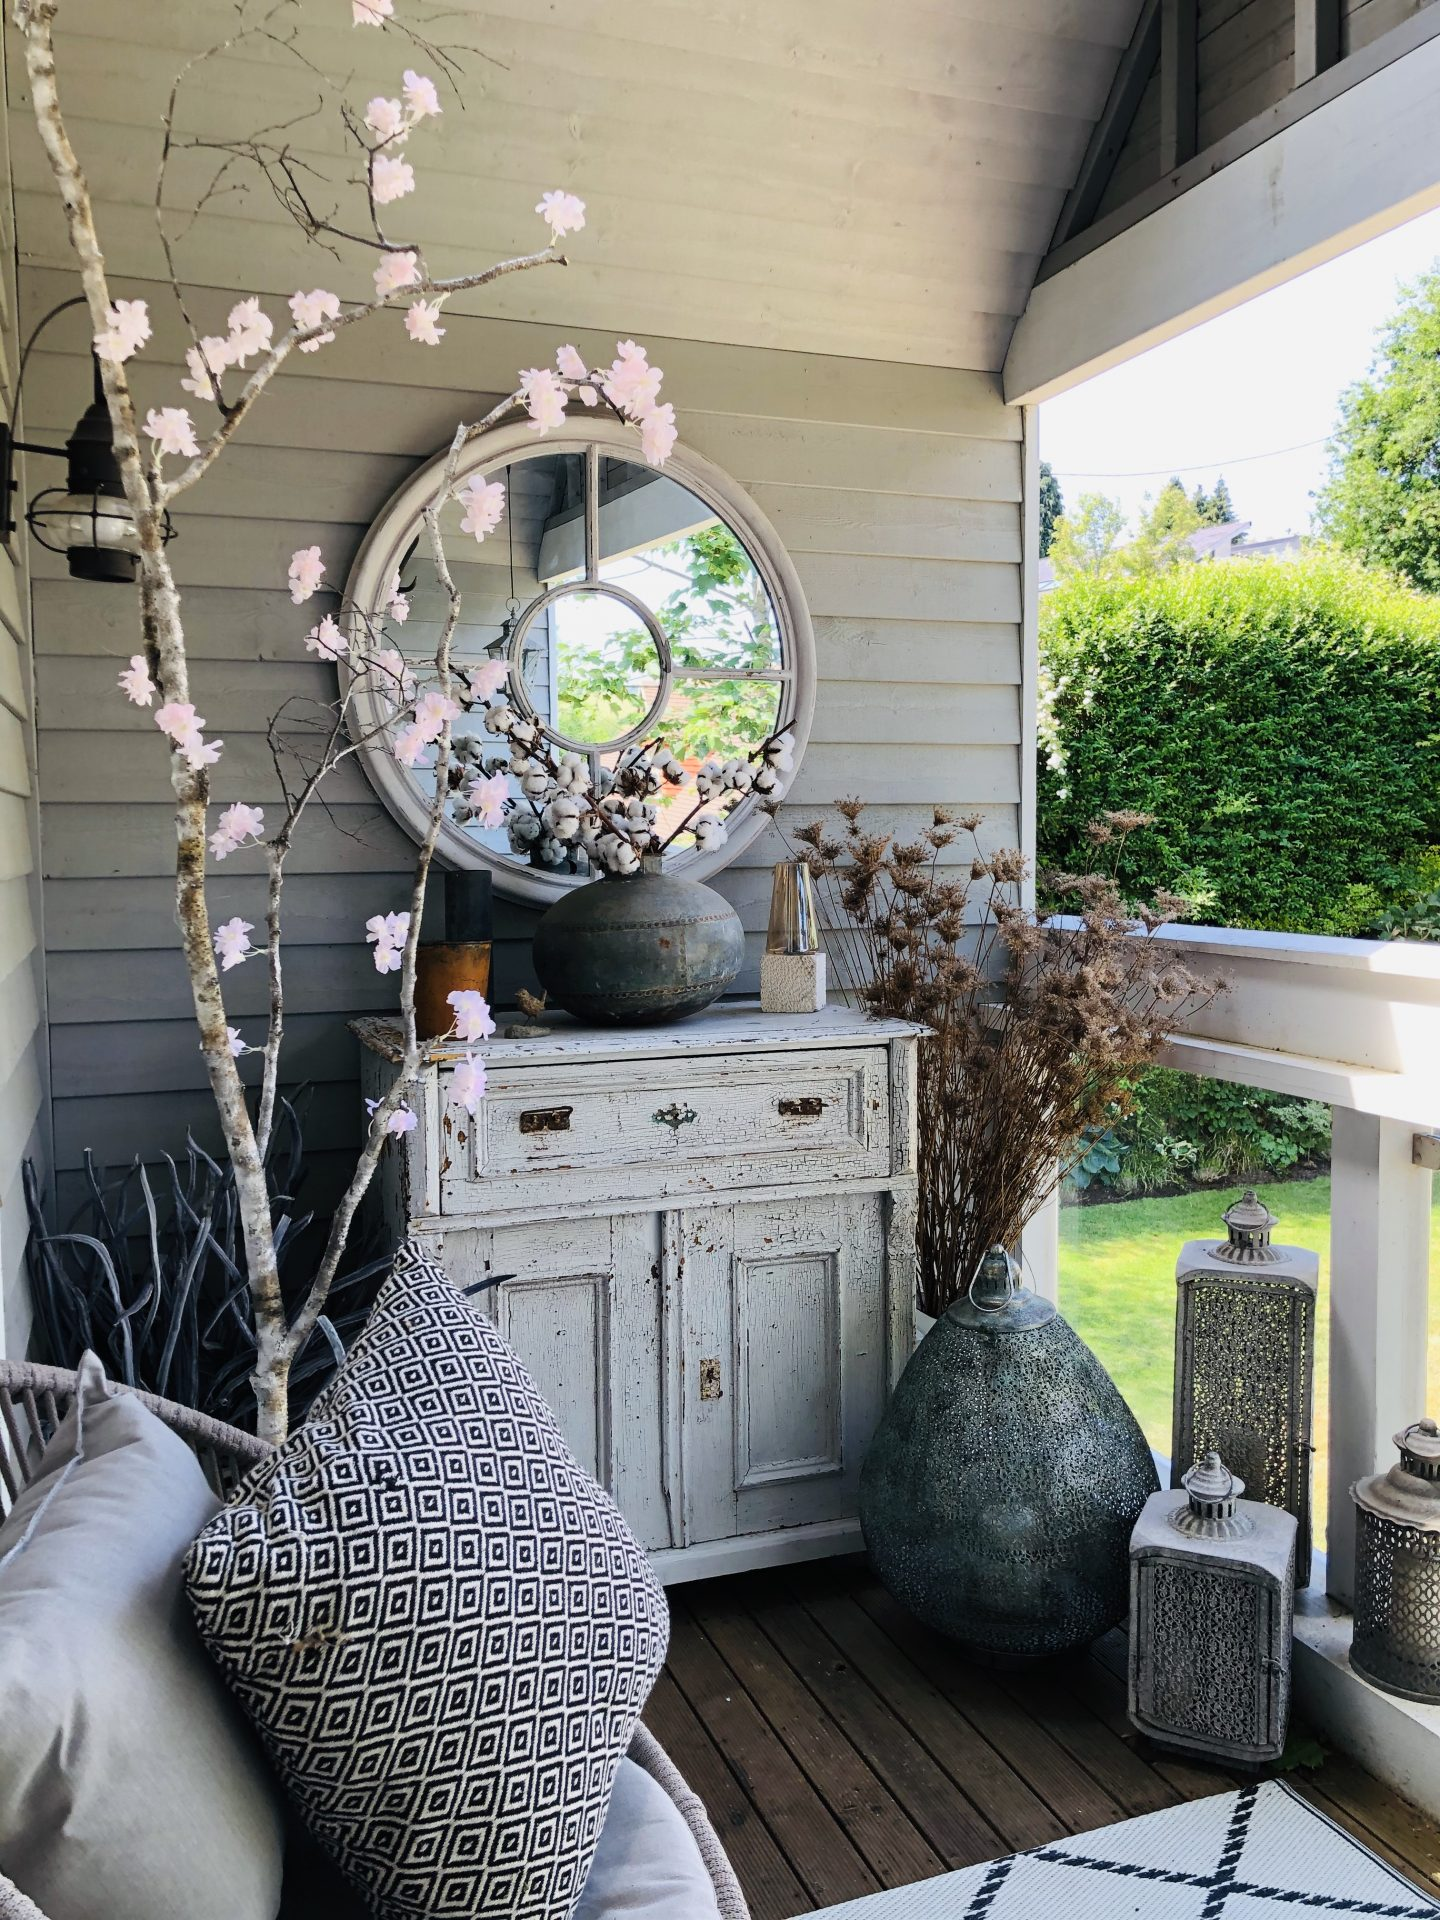 Balcony with faux cherry blossom made by Jp Clark jpslifeandloves.com